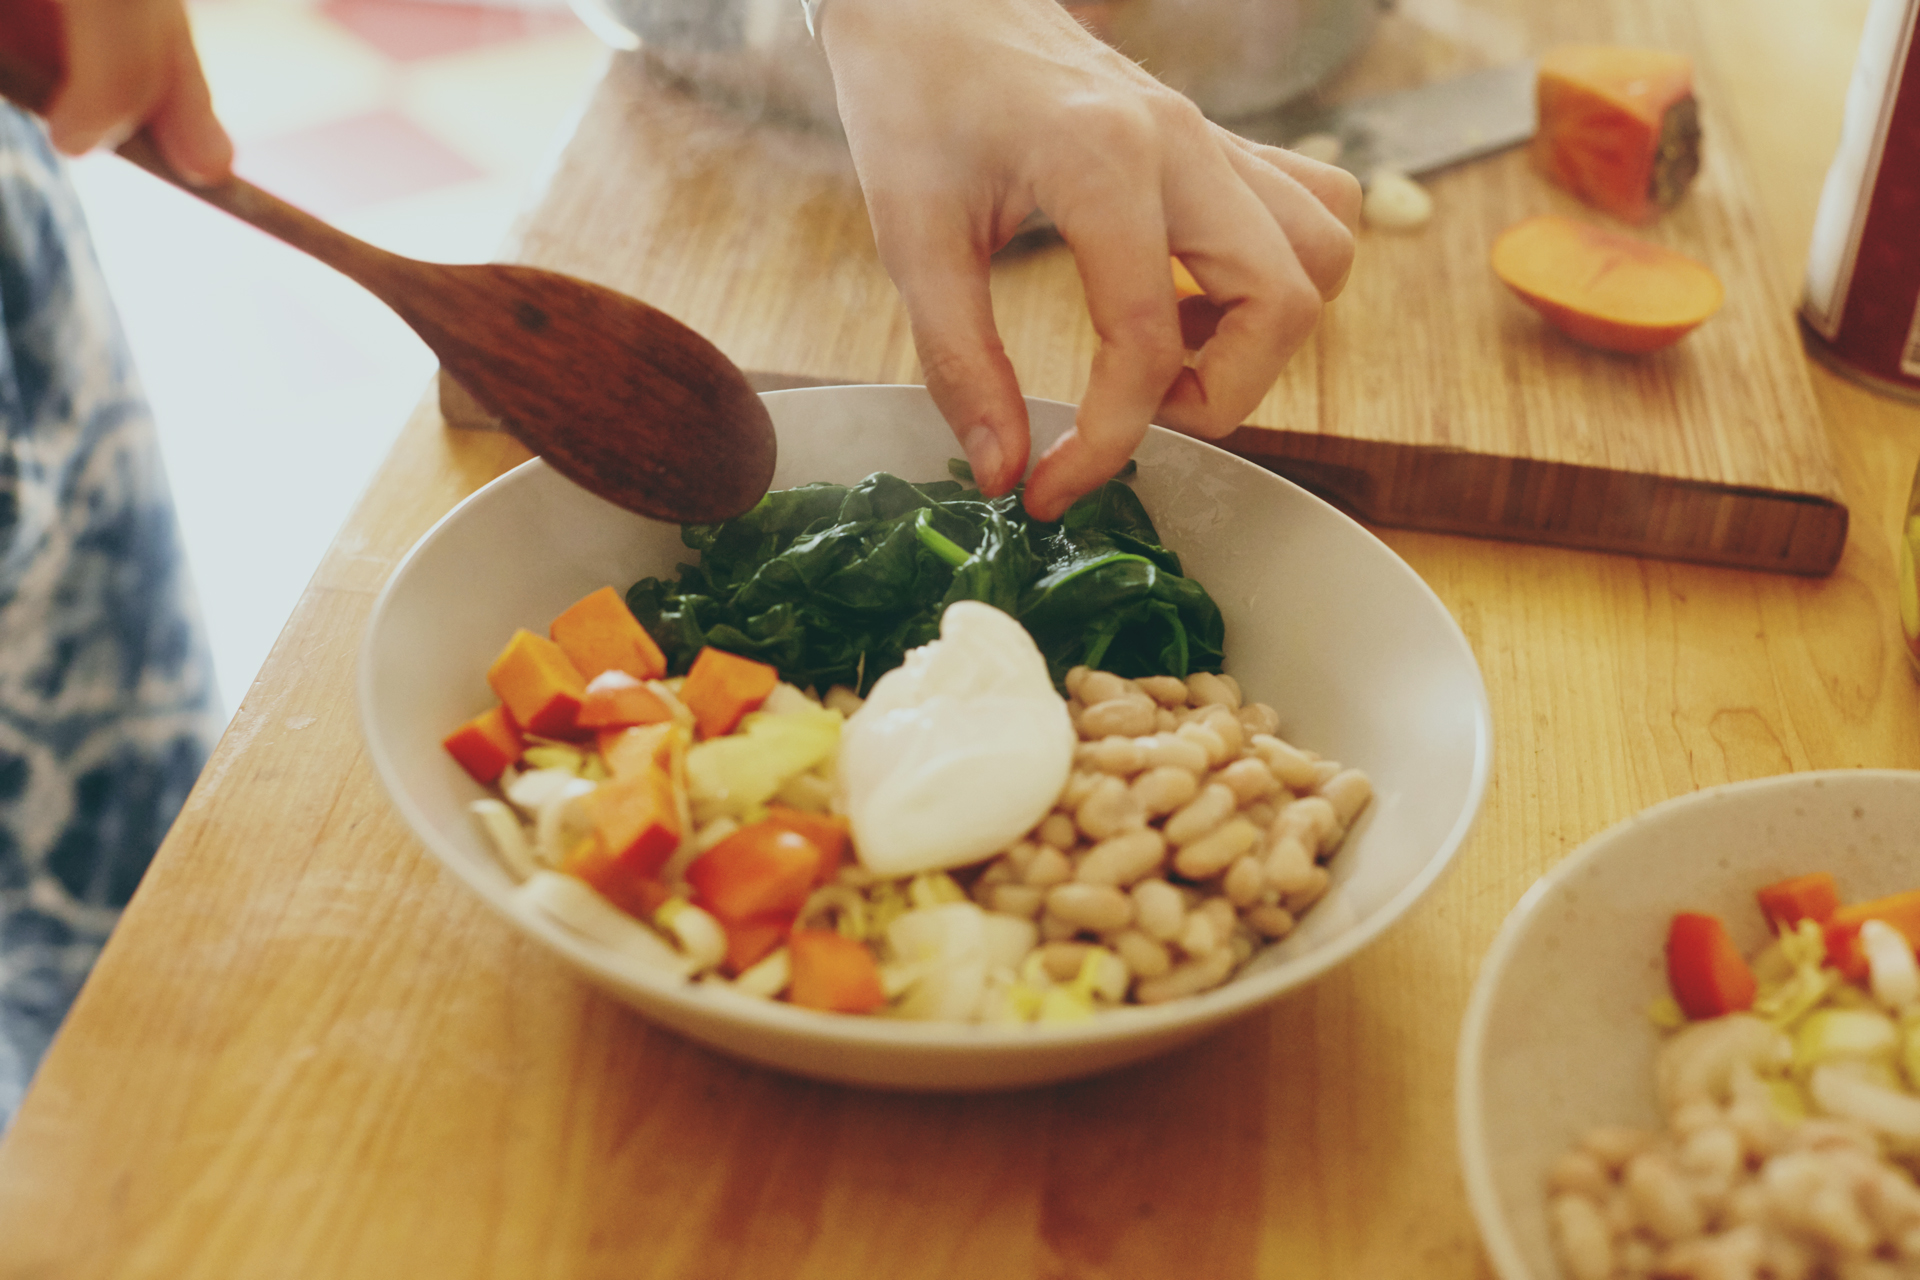 Ashley Neese Nutritional Counsellor prepares her Winter Wellness bowl with leafy greens for Foodadit in Los Angeles